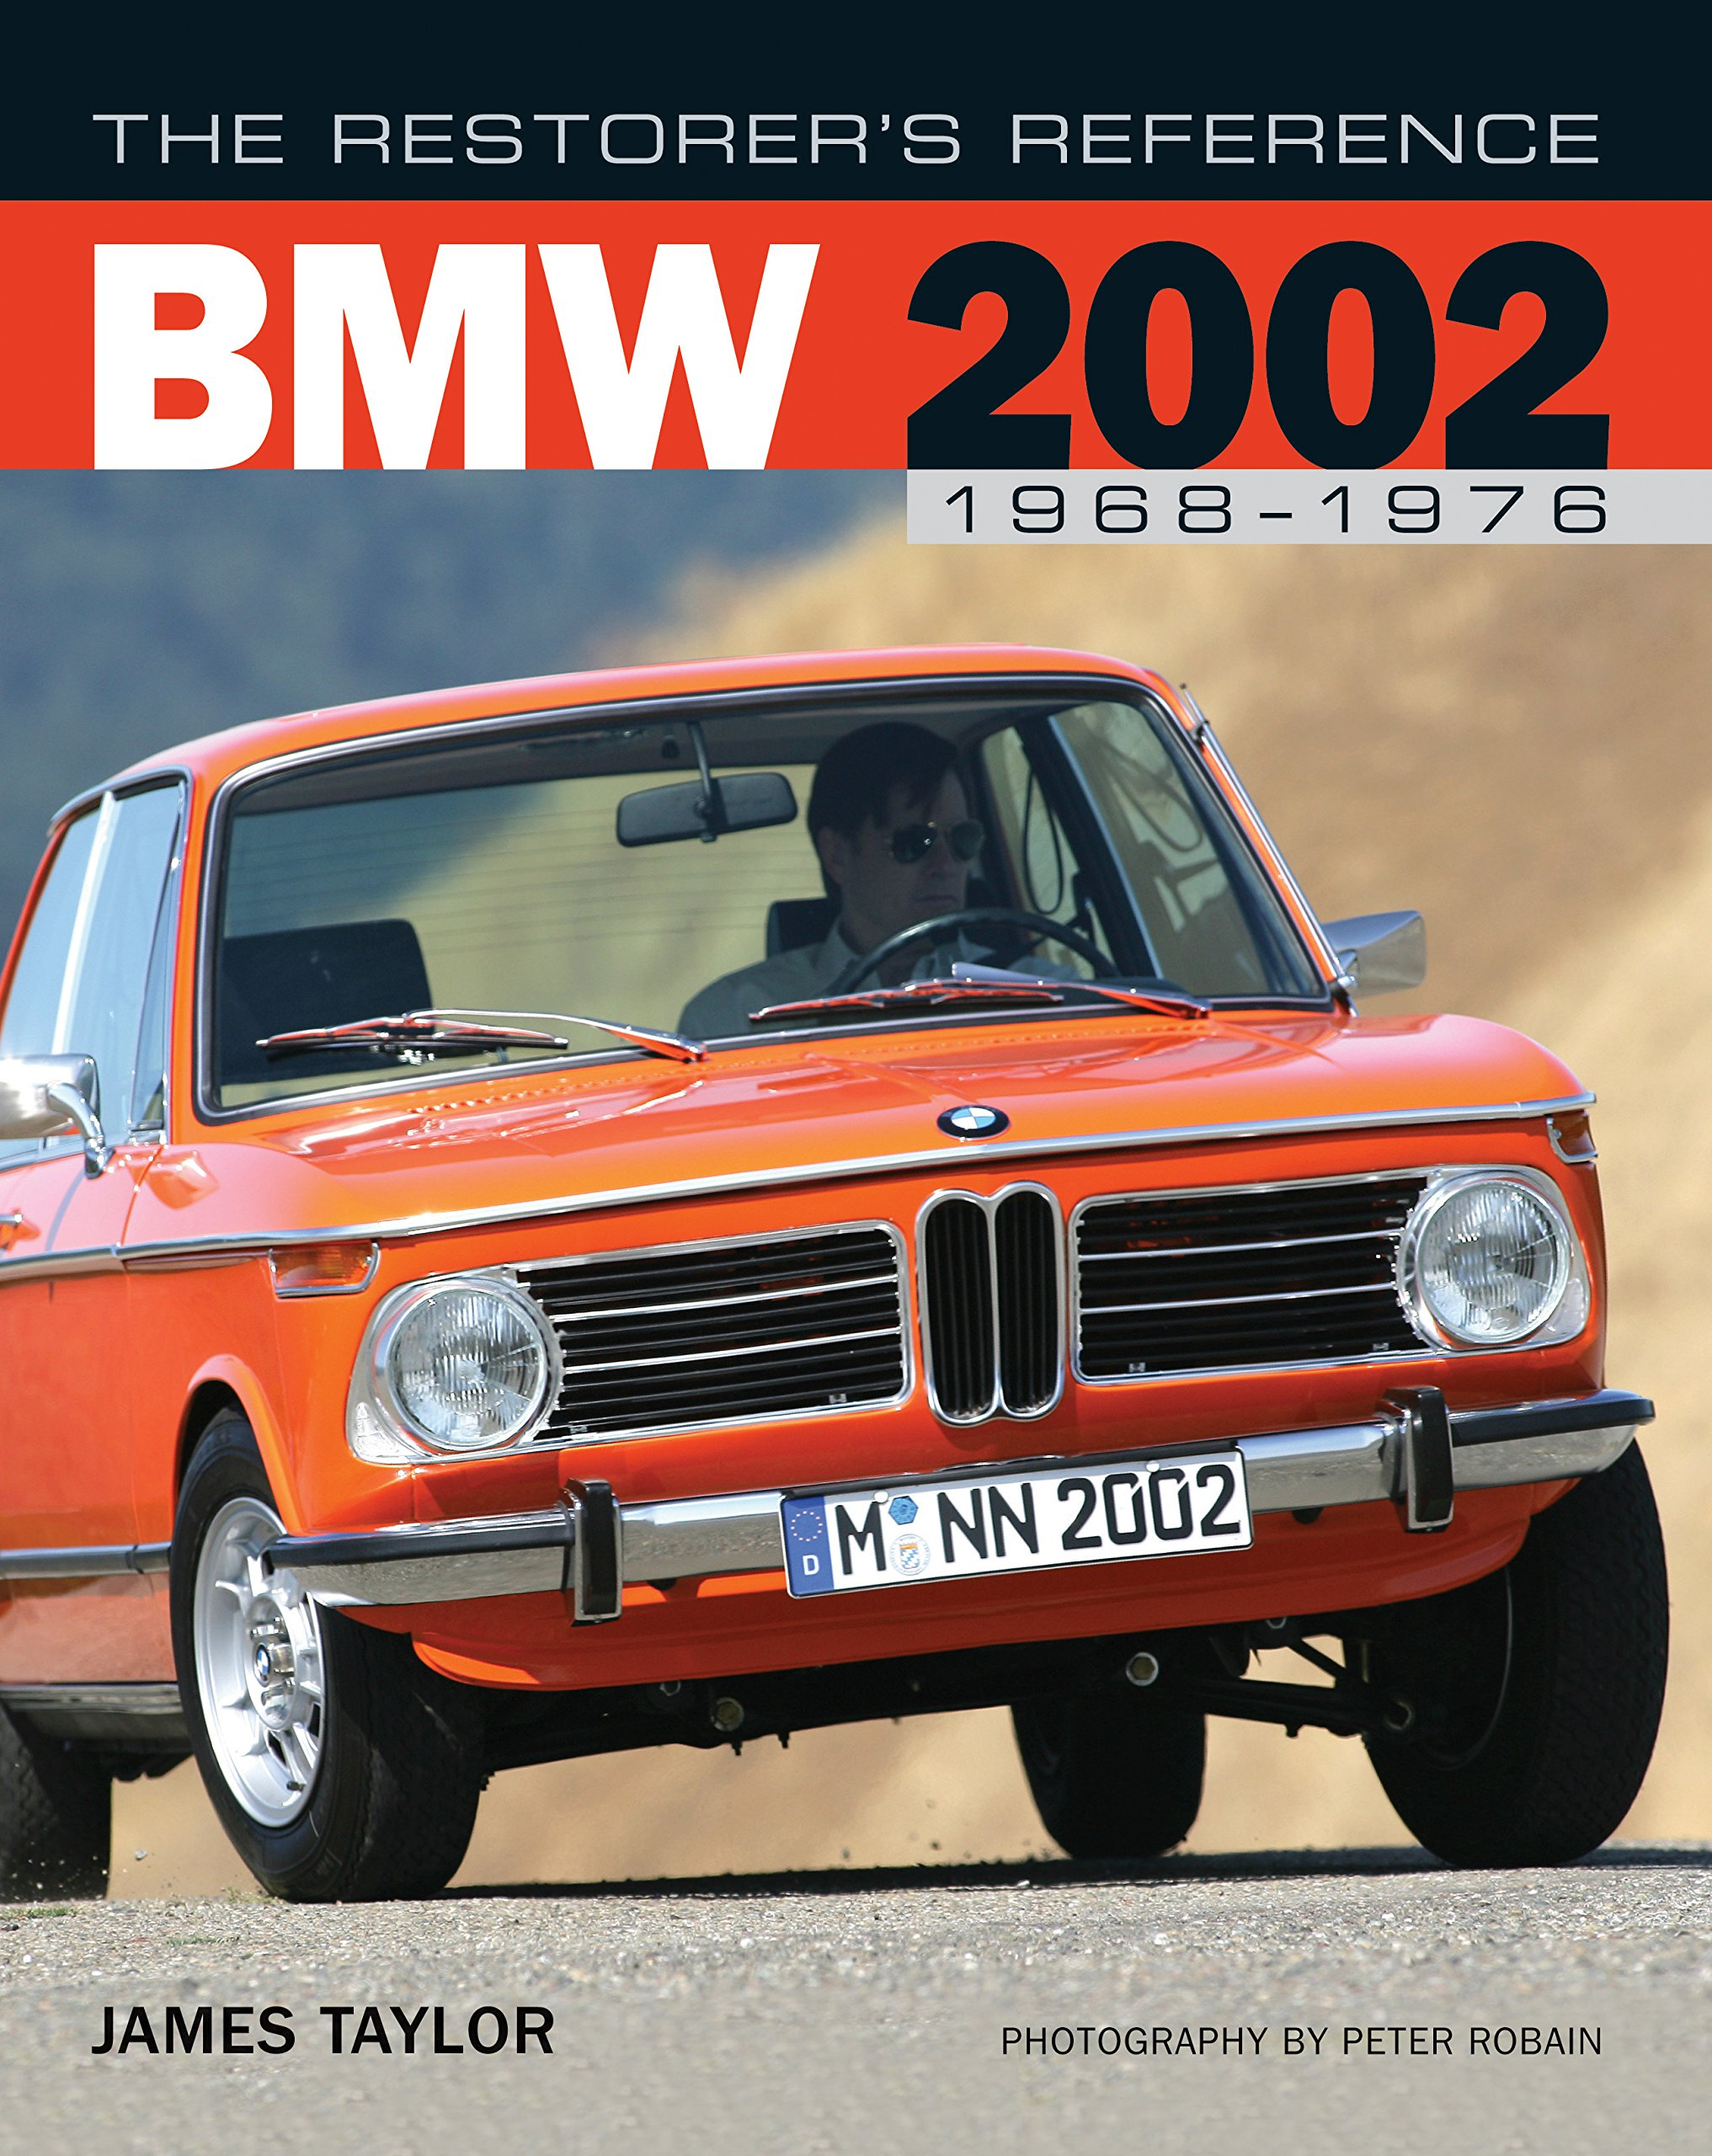 The Restorers Reference BMW 2002 1968-1976: Amazon.es: James Taylor, Peter Robain: Libros en idiomas extranjeros